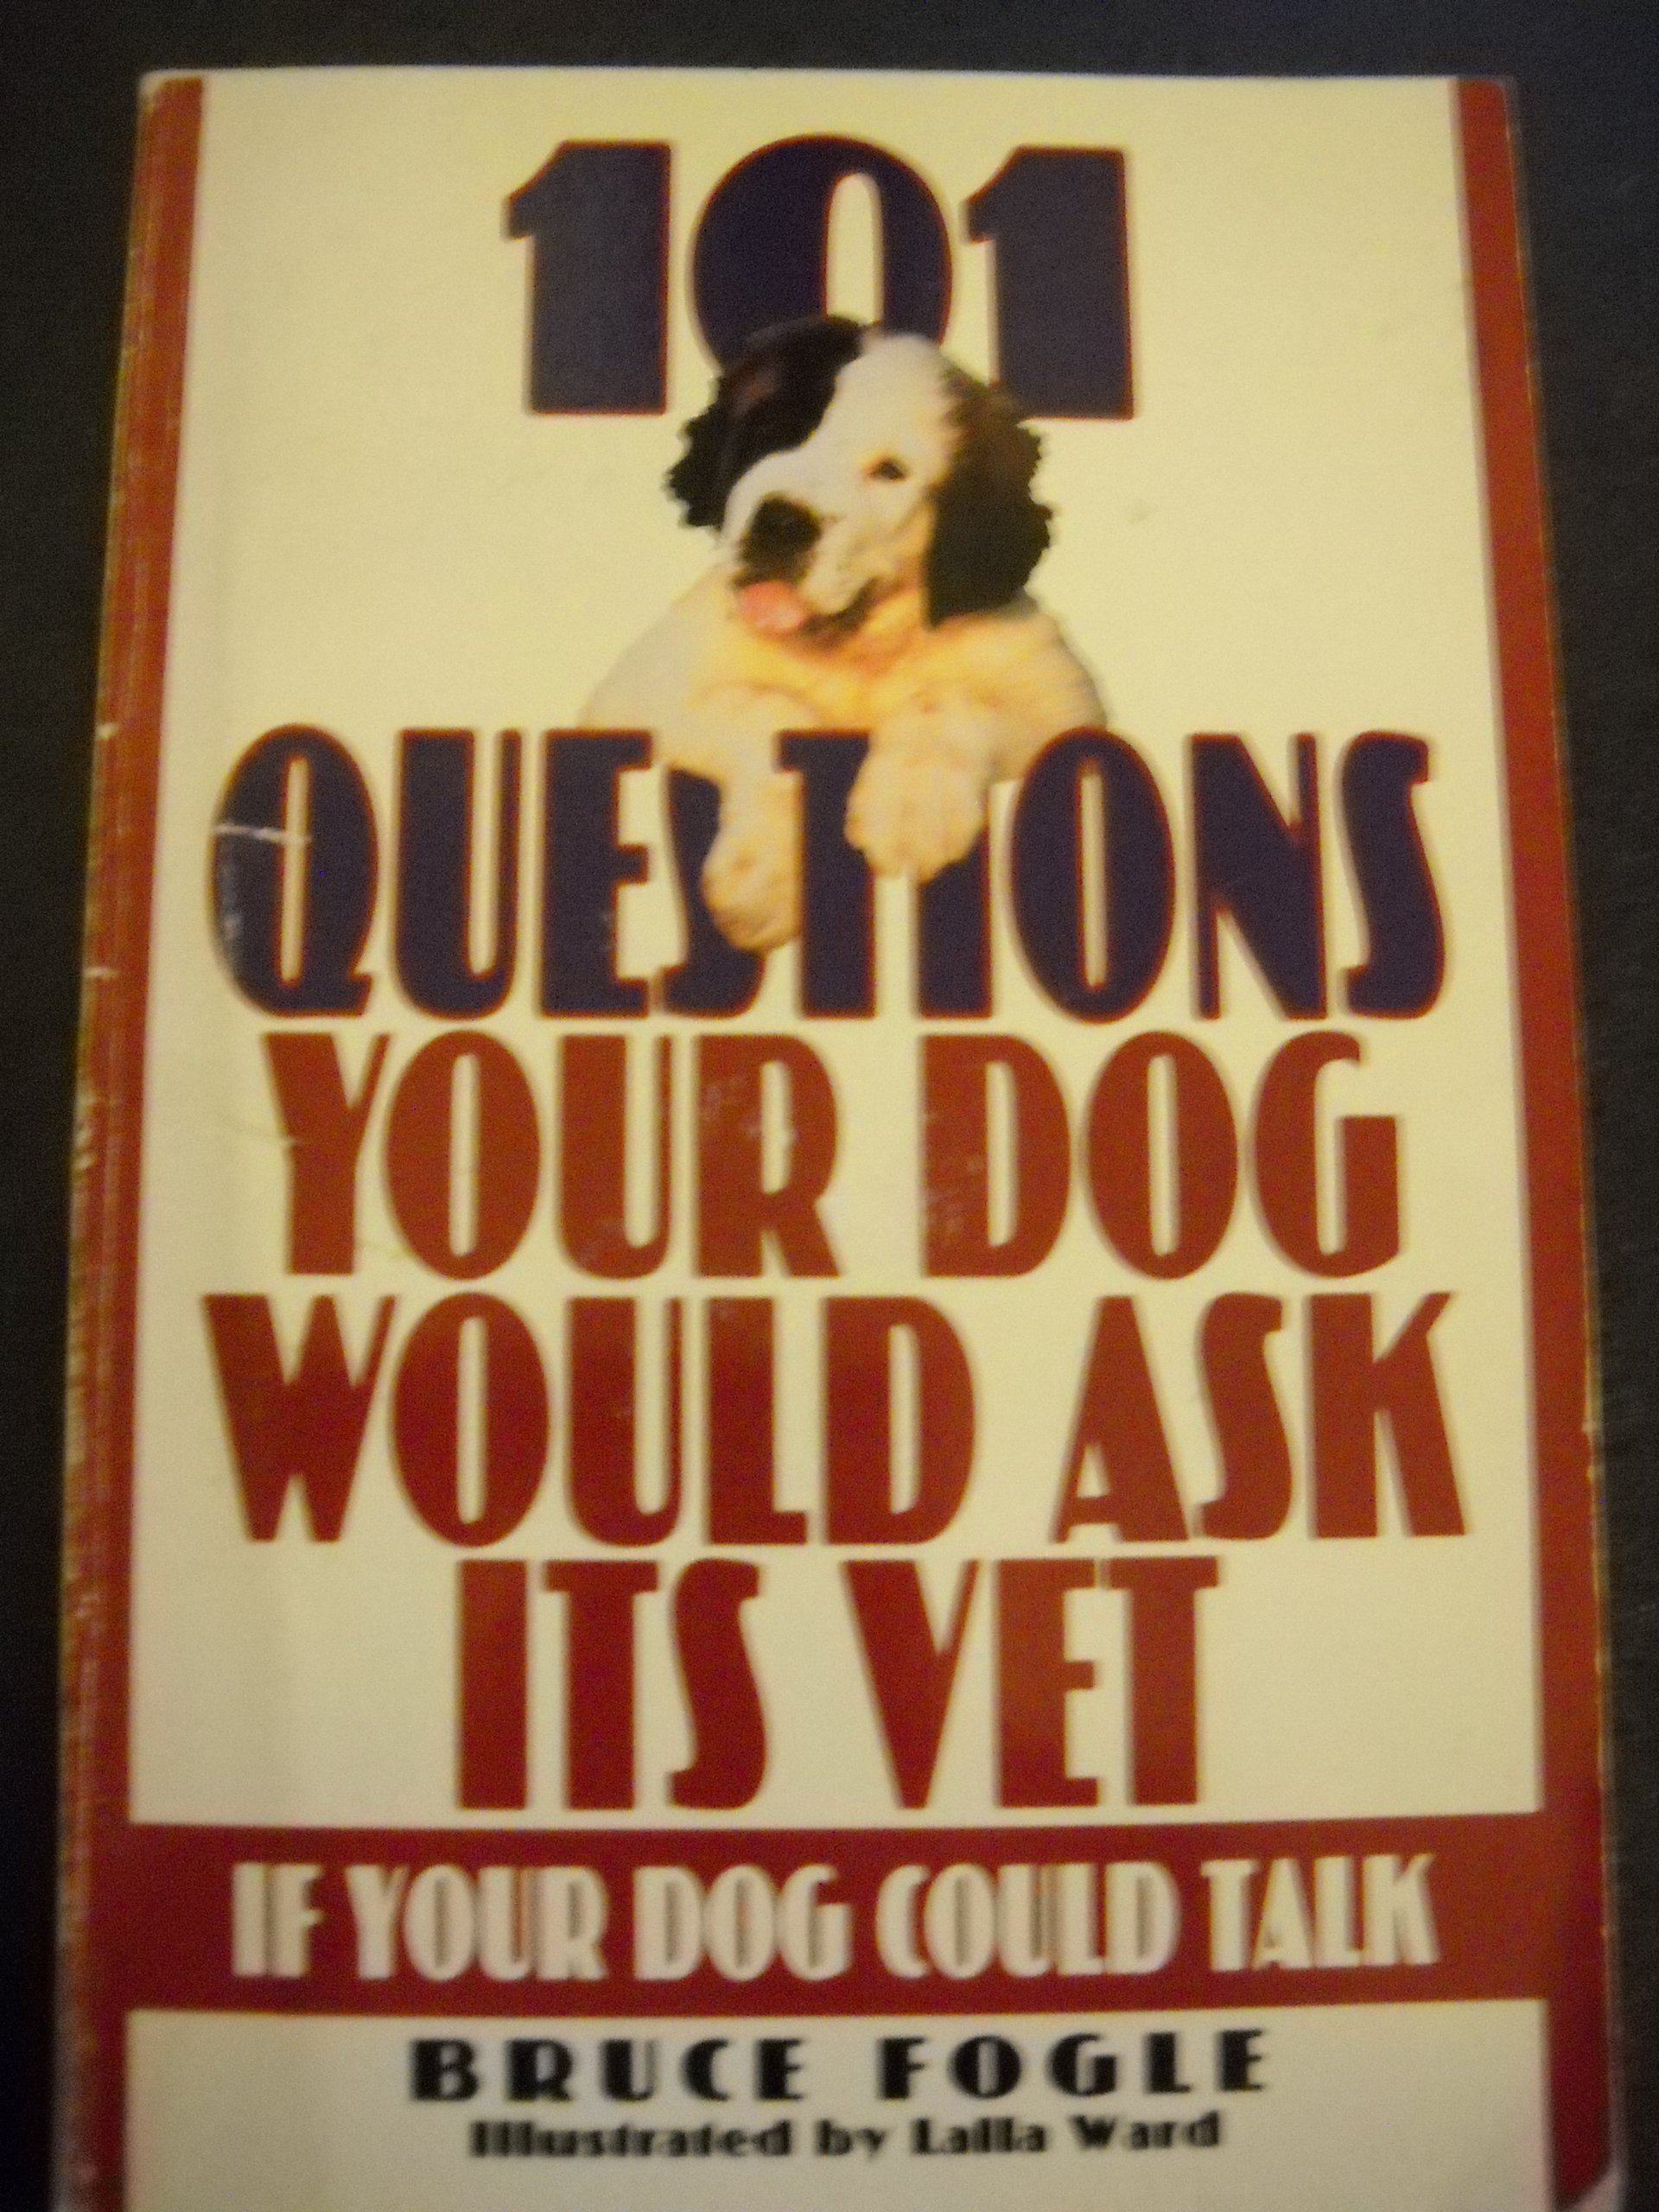 101 Questions Your Dog Would Ask Its Vet If Your Dog Could Talk